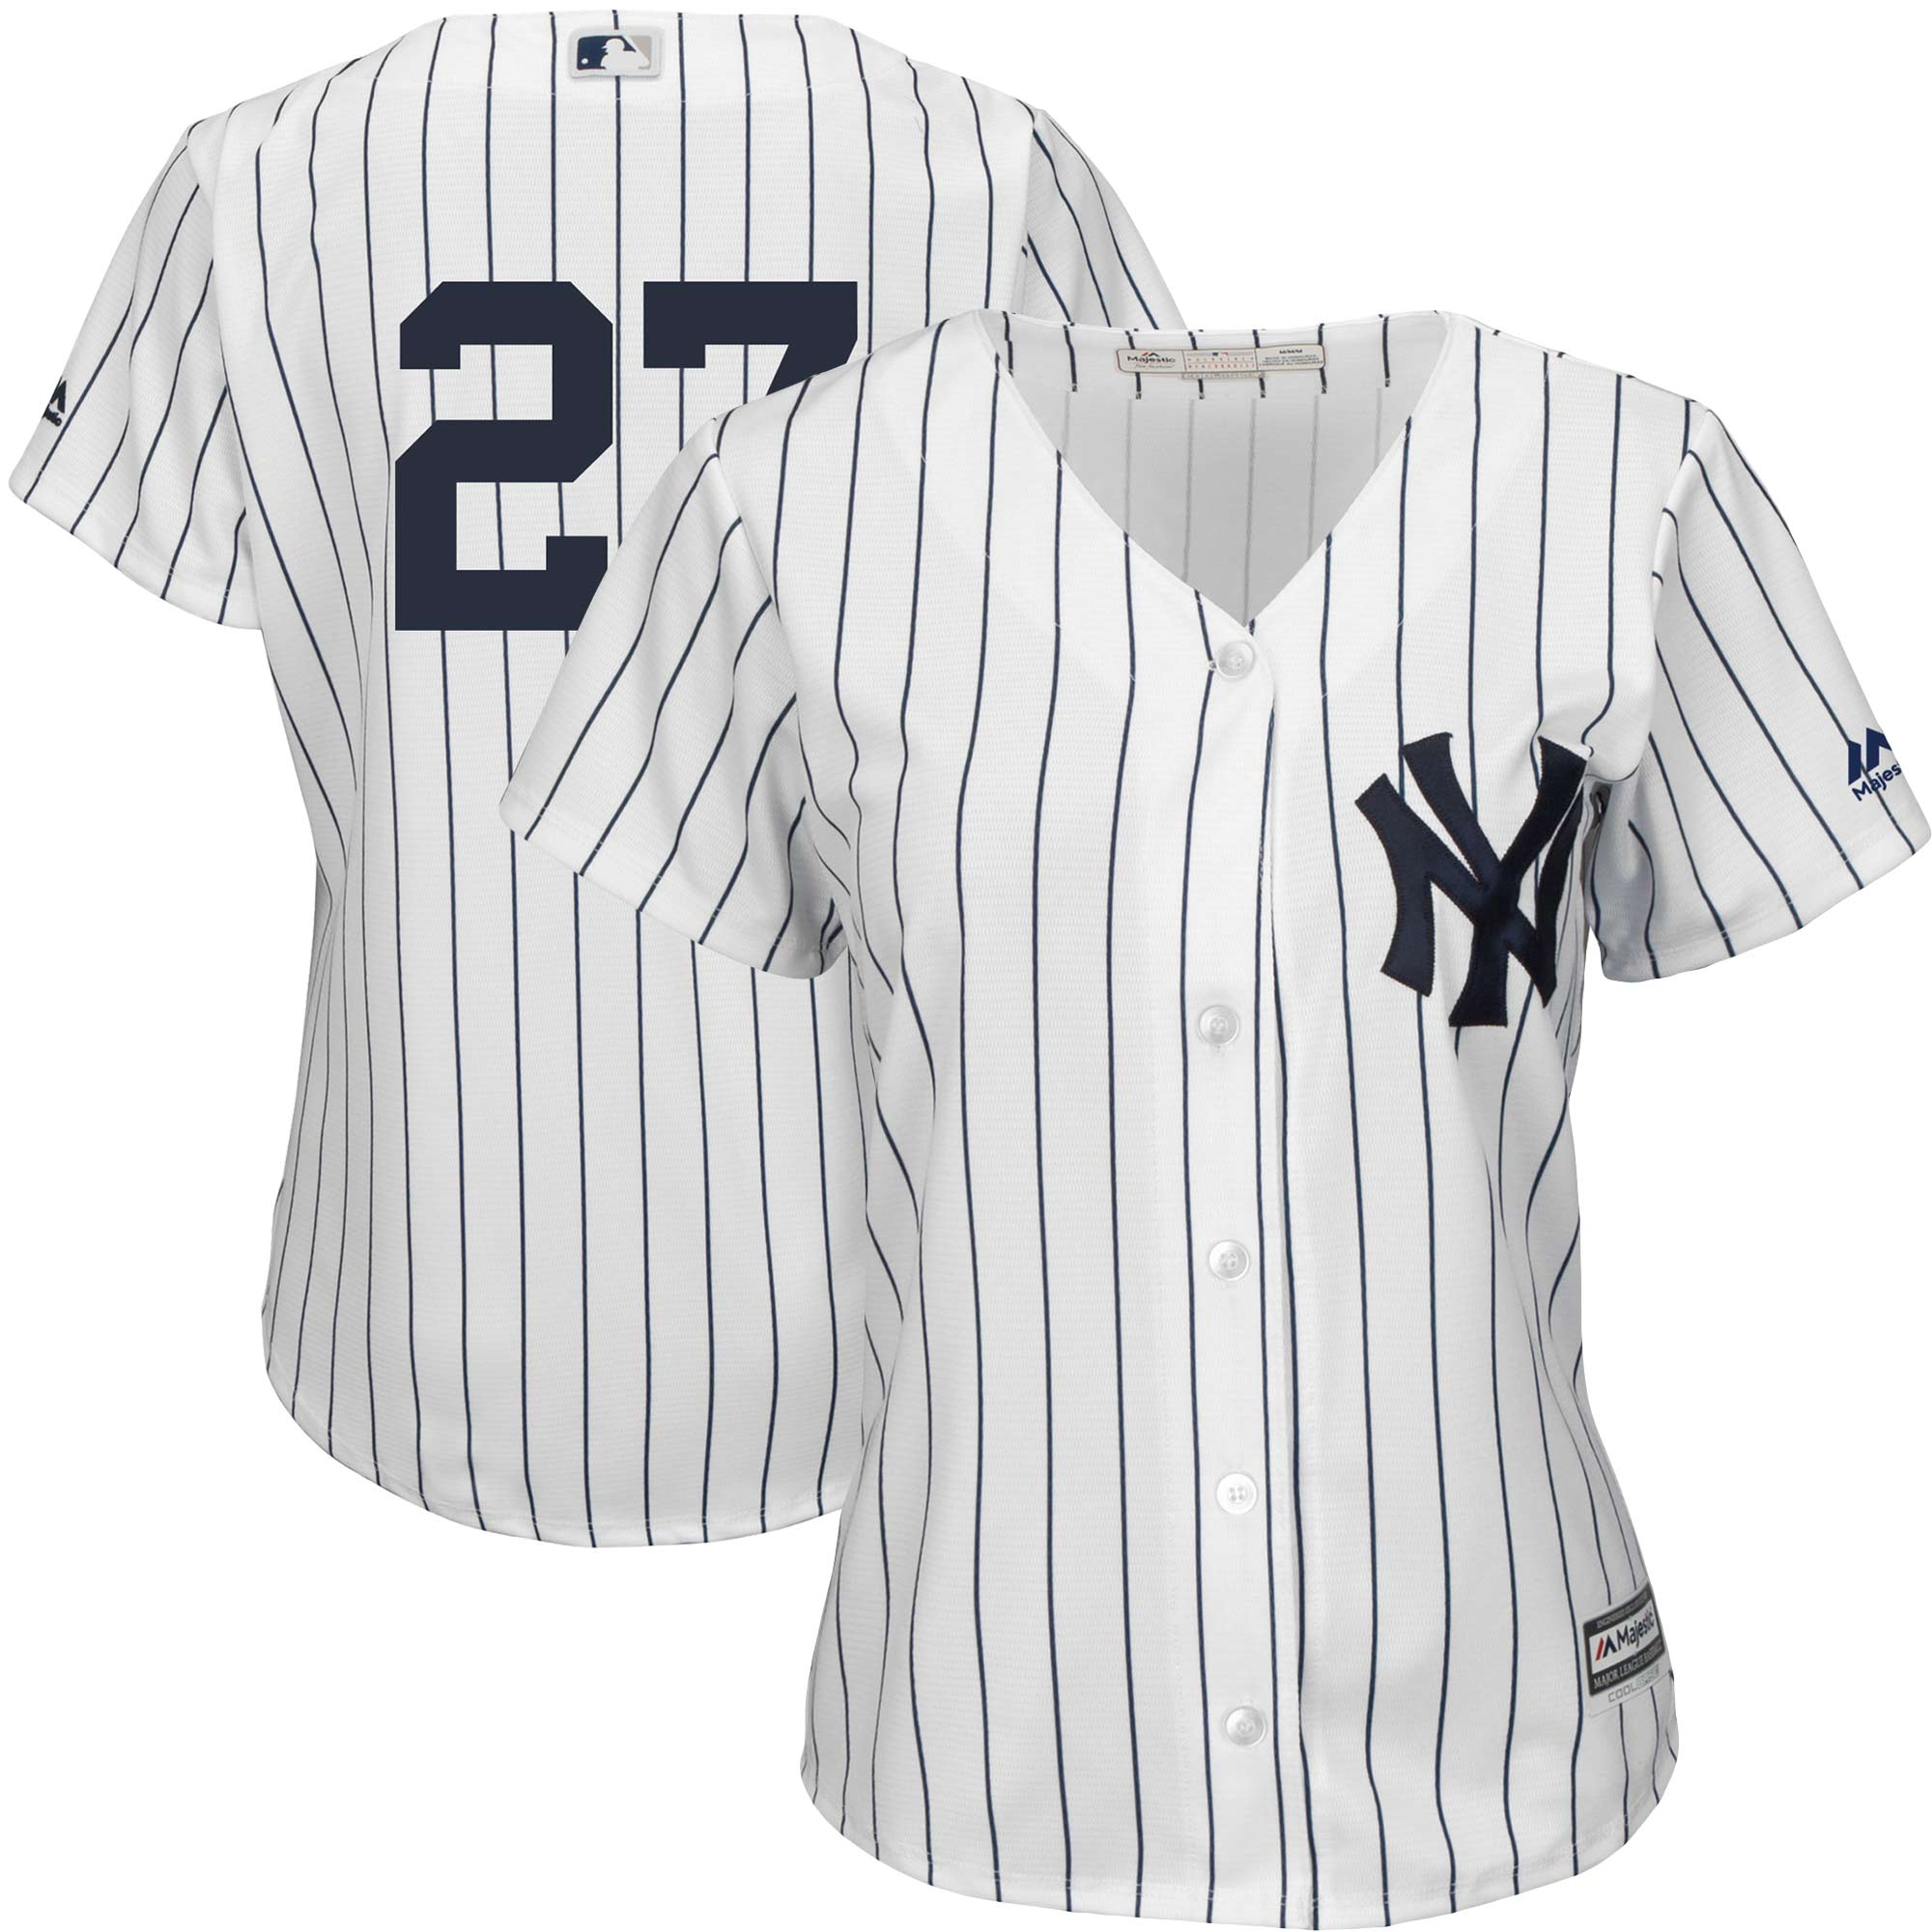 Giancarlo Stanton New York Yankees Majestic Women's Team Cool Base Player Jersey White by MAJESTIC LSG